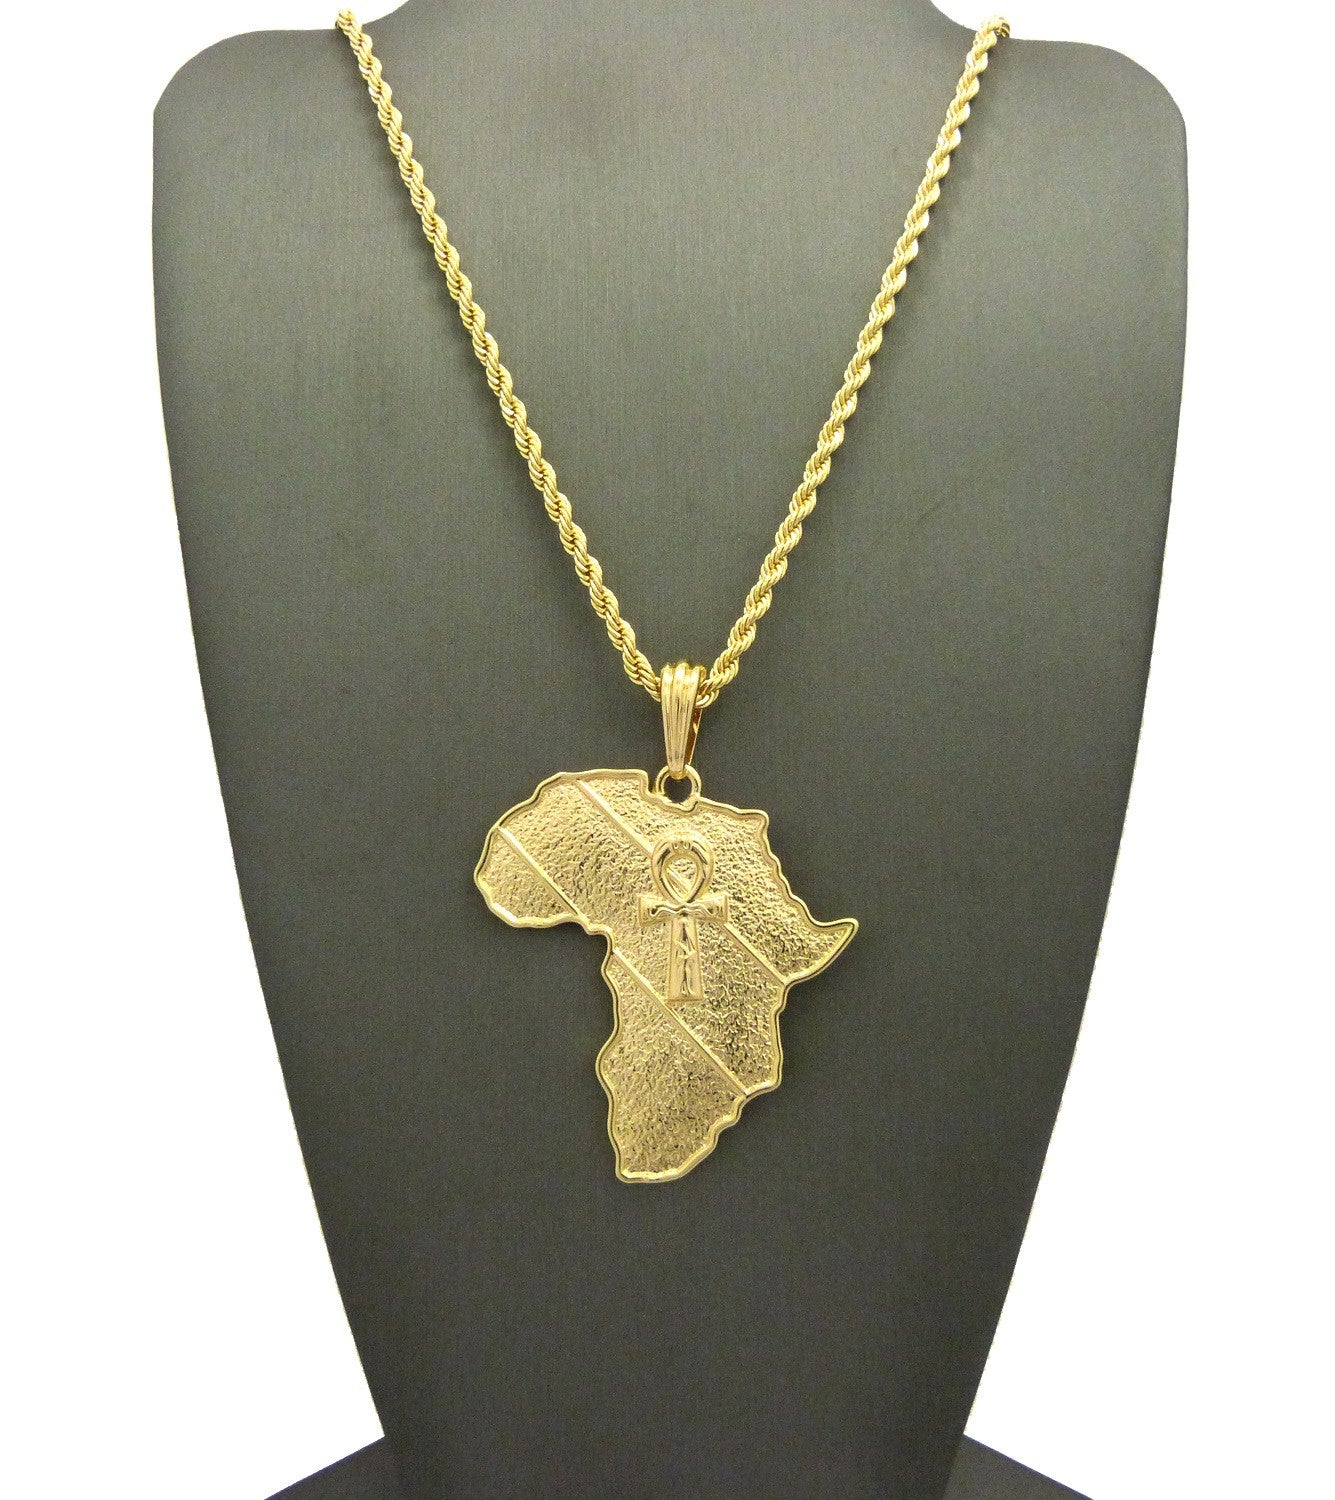 14k Gold Plated Africa Pendant with Implanted Ankh Cross